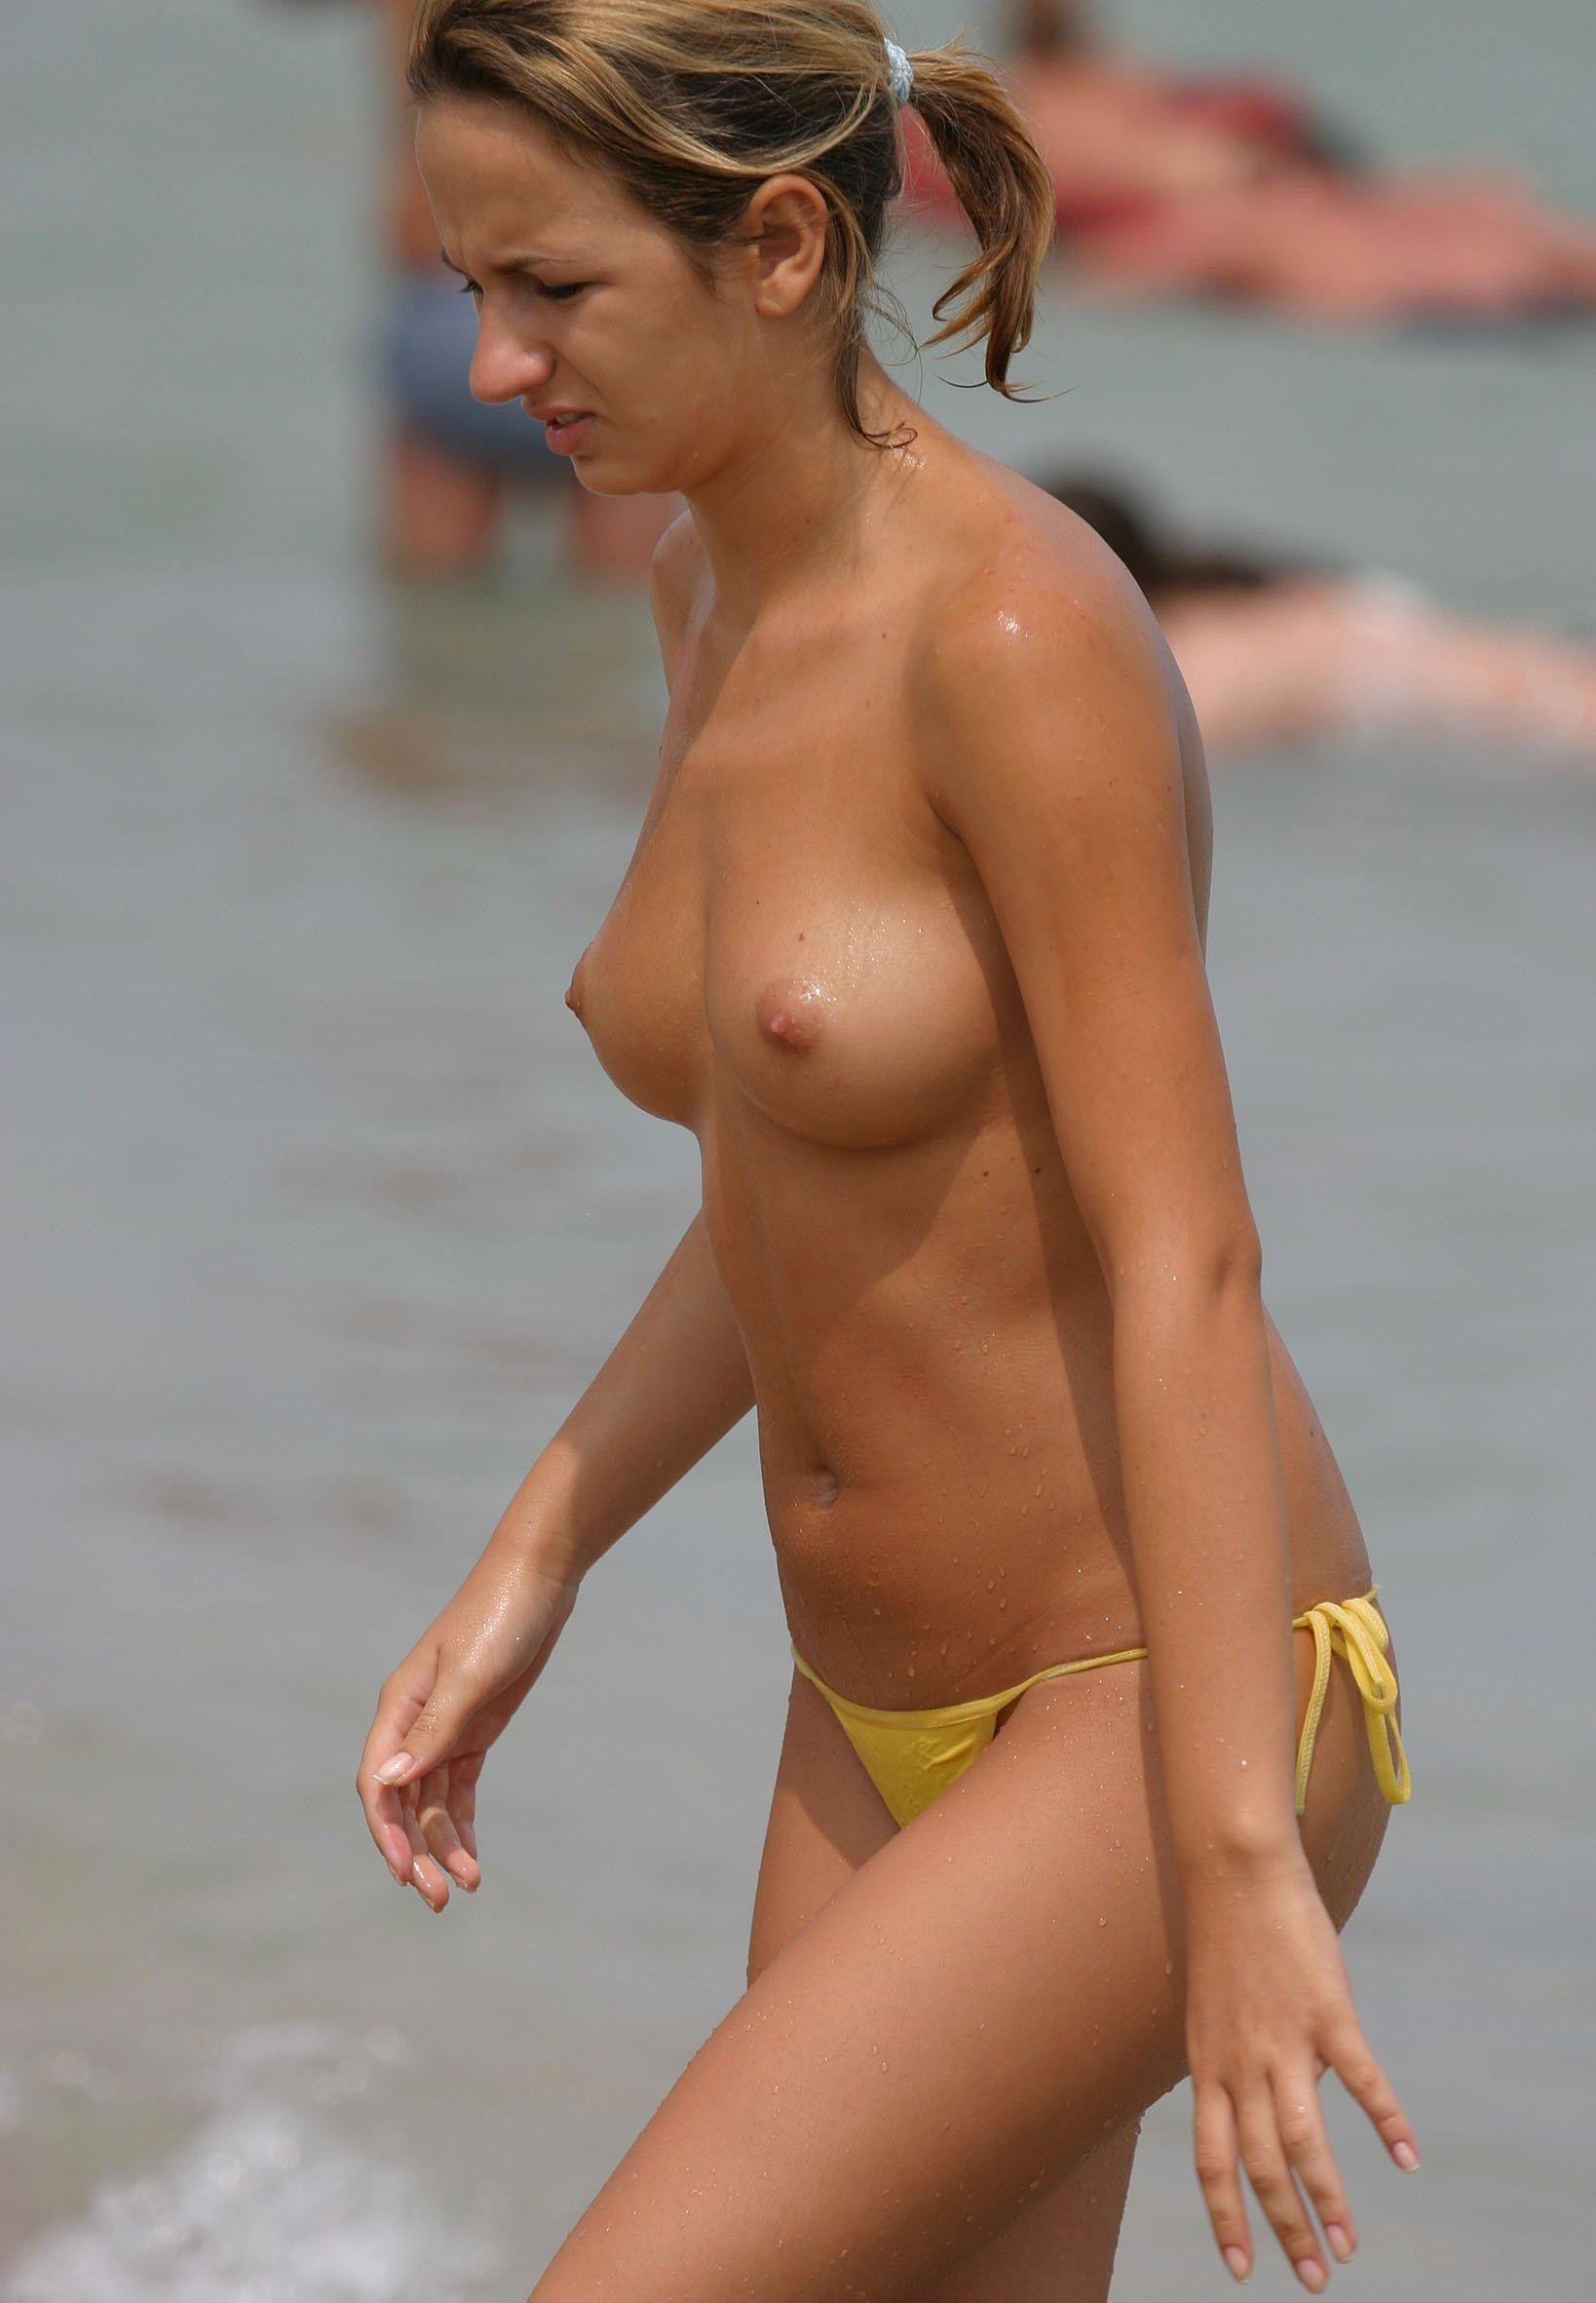 nudists-girls-boobs-beach-topless-mix-vol7-70